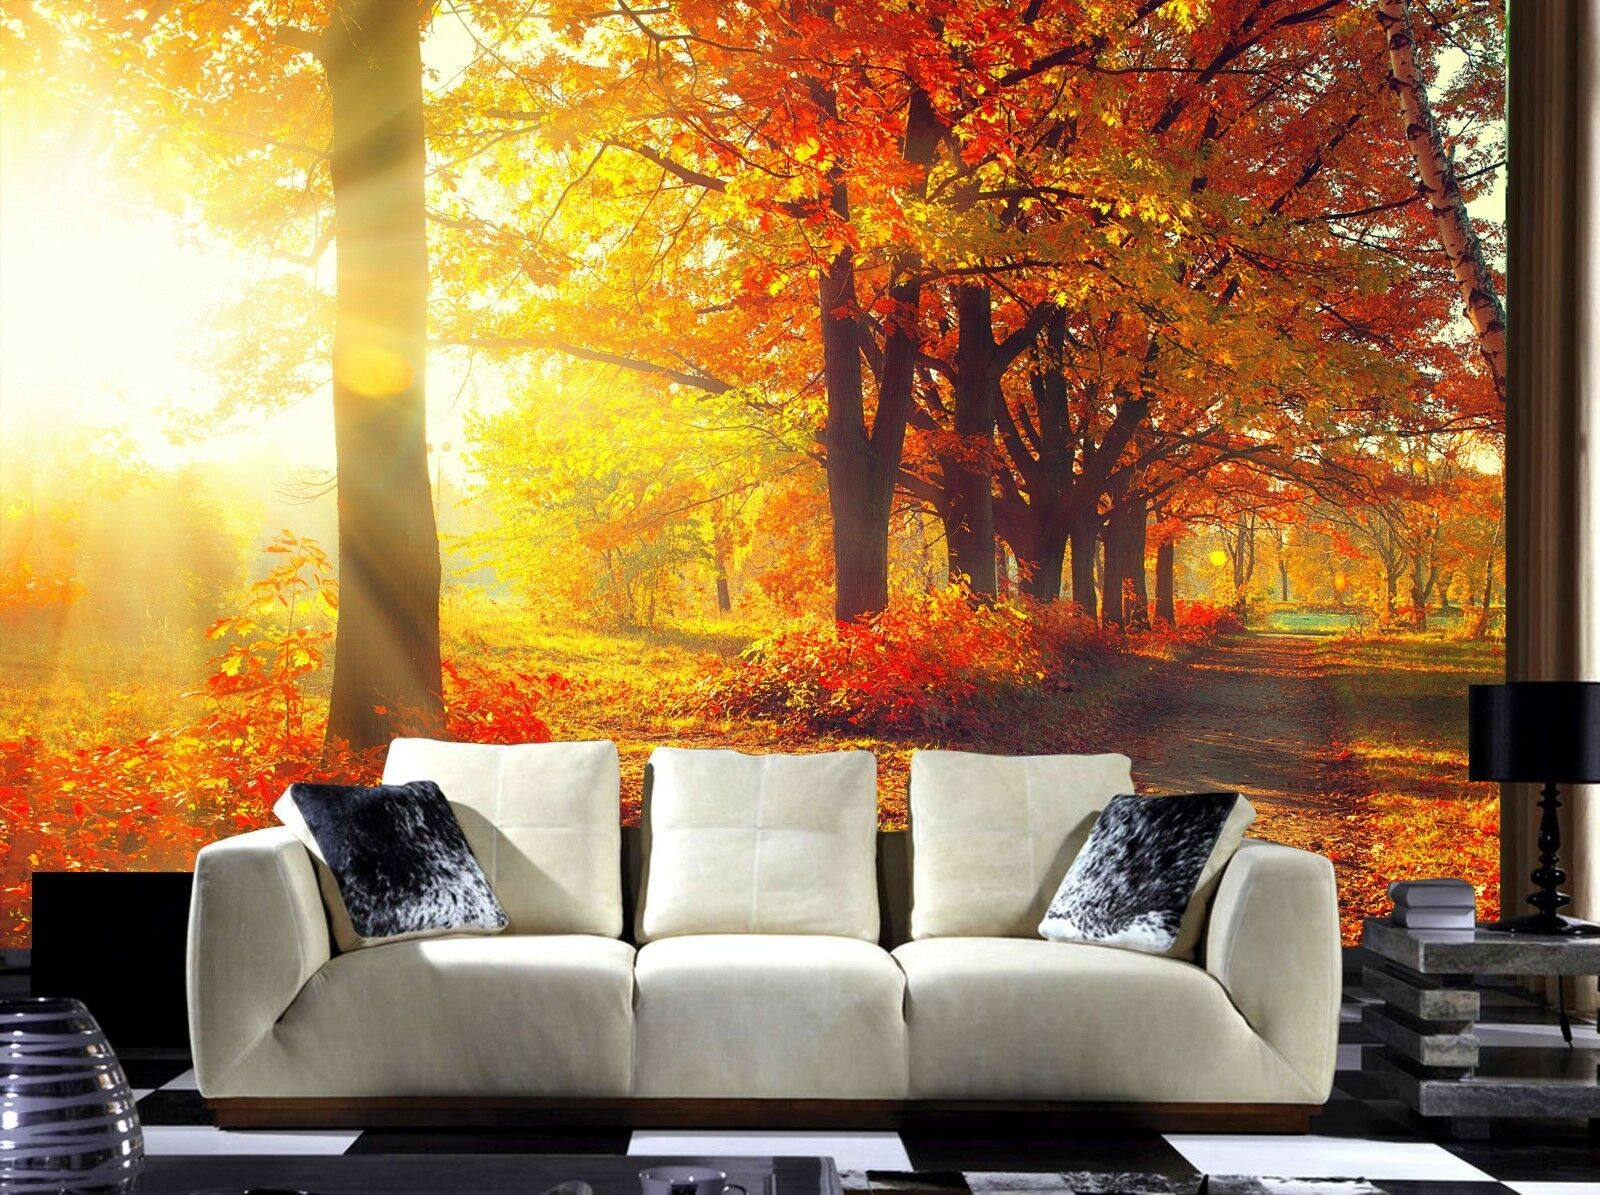 Tree Leaves Plants Forest Autumn Photo Wallpaper Mural Home Poster Decoration h